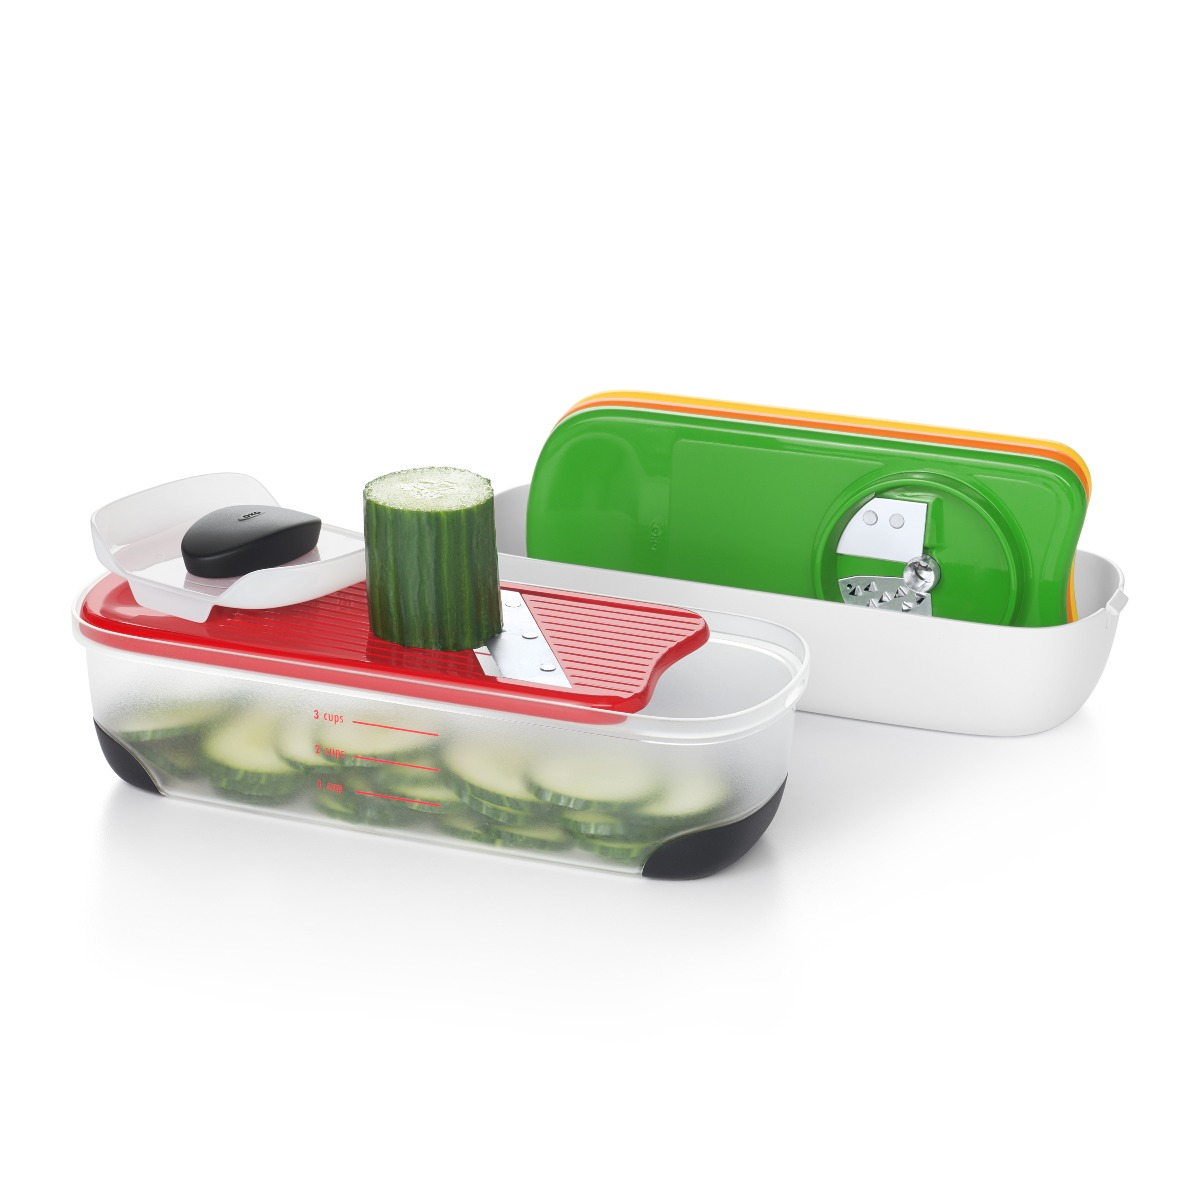 OXO Good Grips Spiralize, Grate & Slice Set